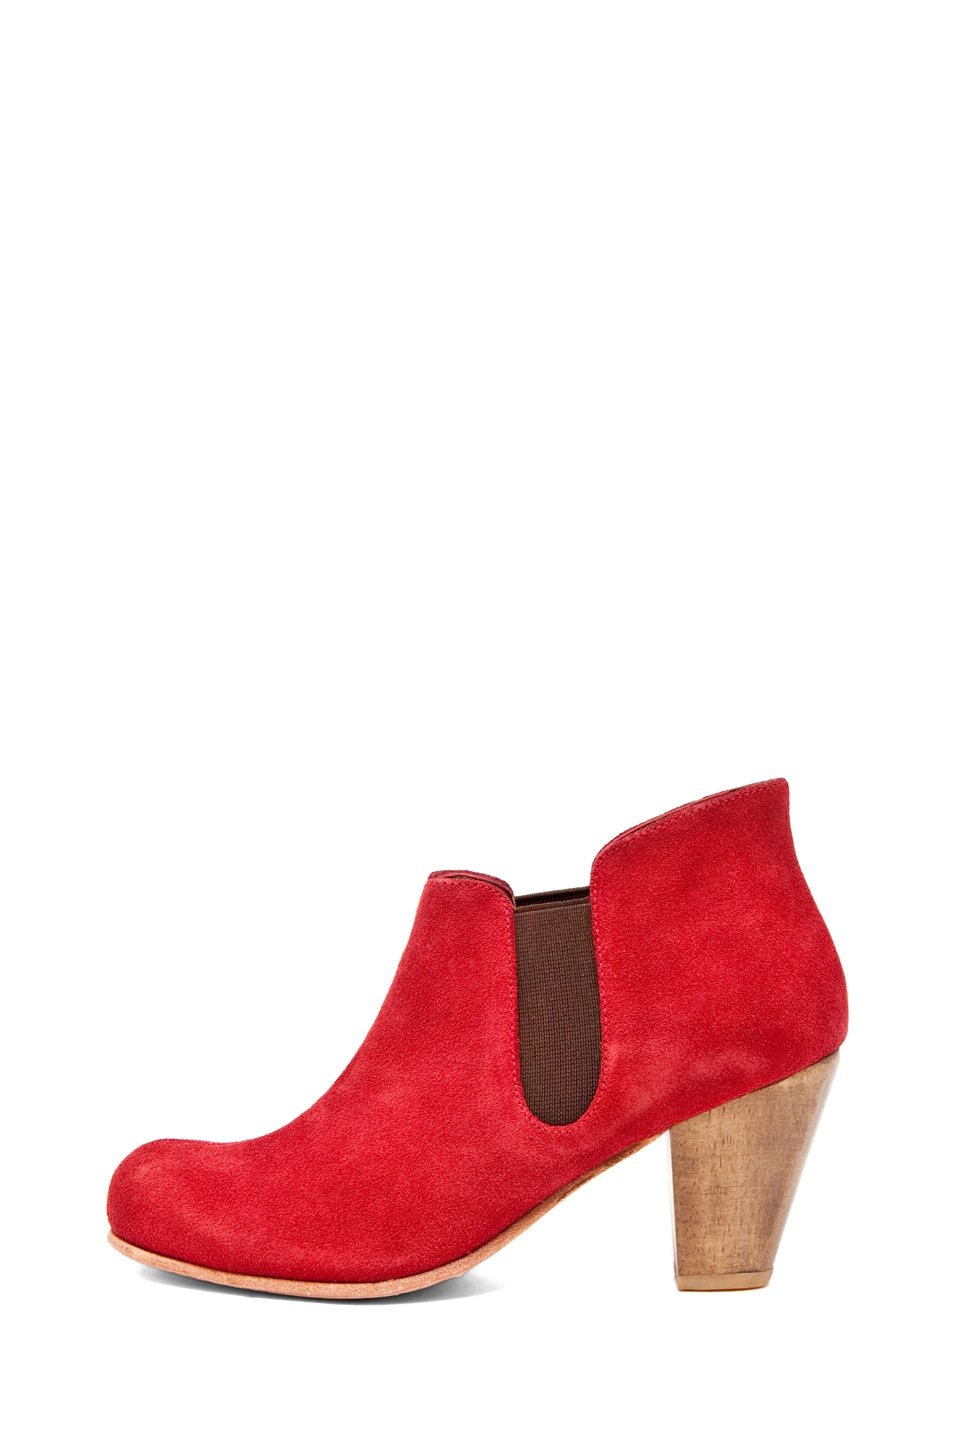 Image 1 of Rachel Comey Sir Barton Bootie in Red